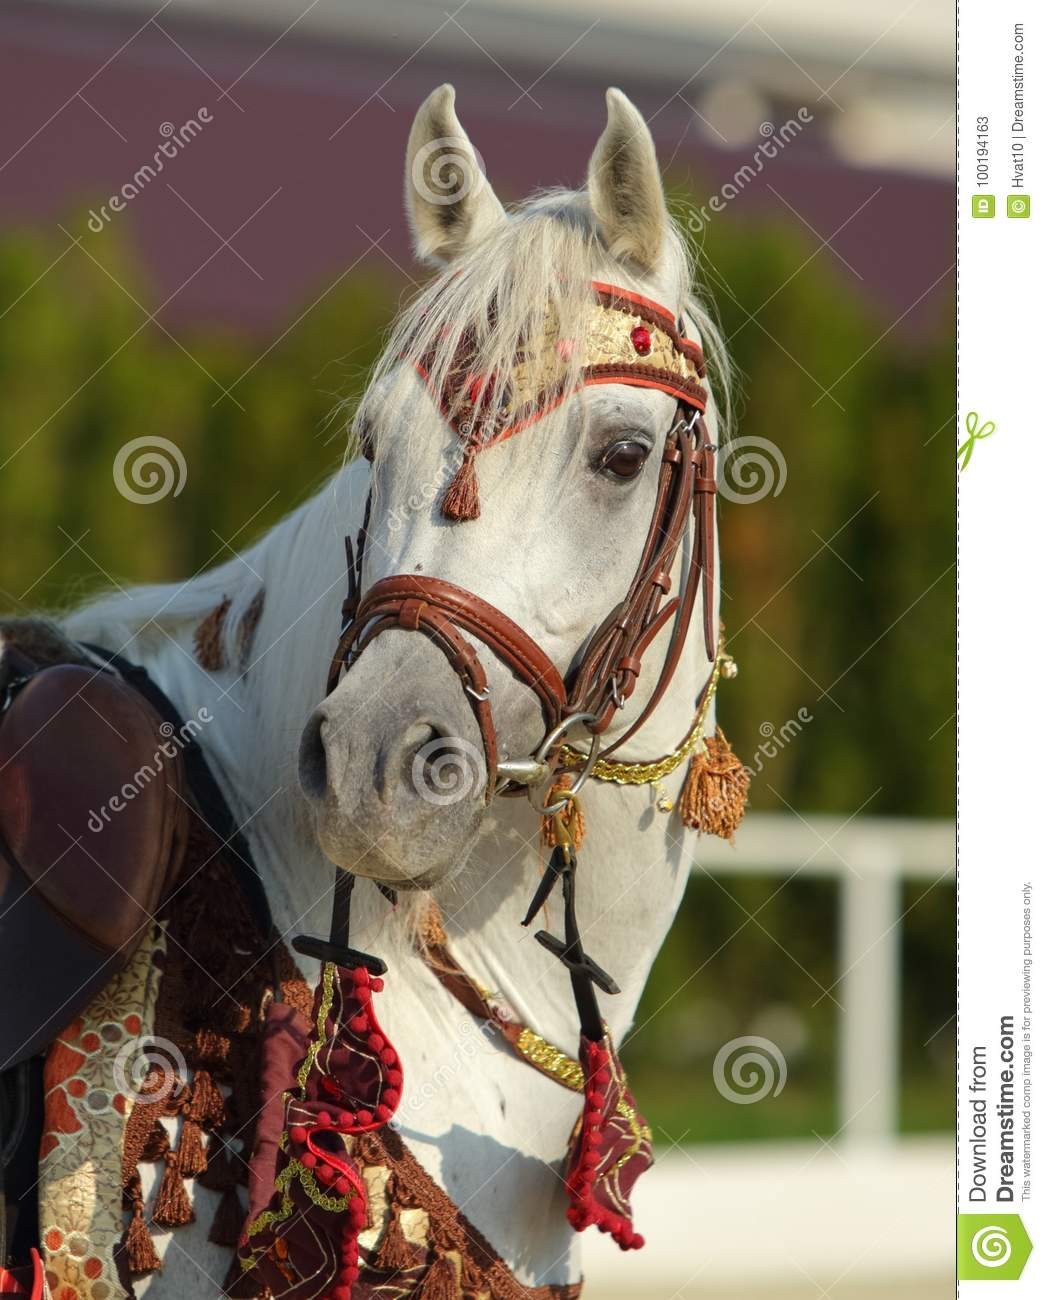 Thoroughbred Arabian Horse In Paddock Stock Image Image Of Background Mares 100194163